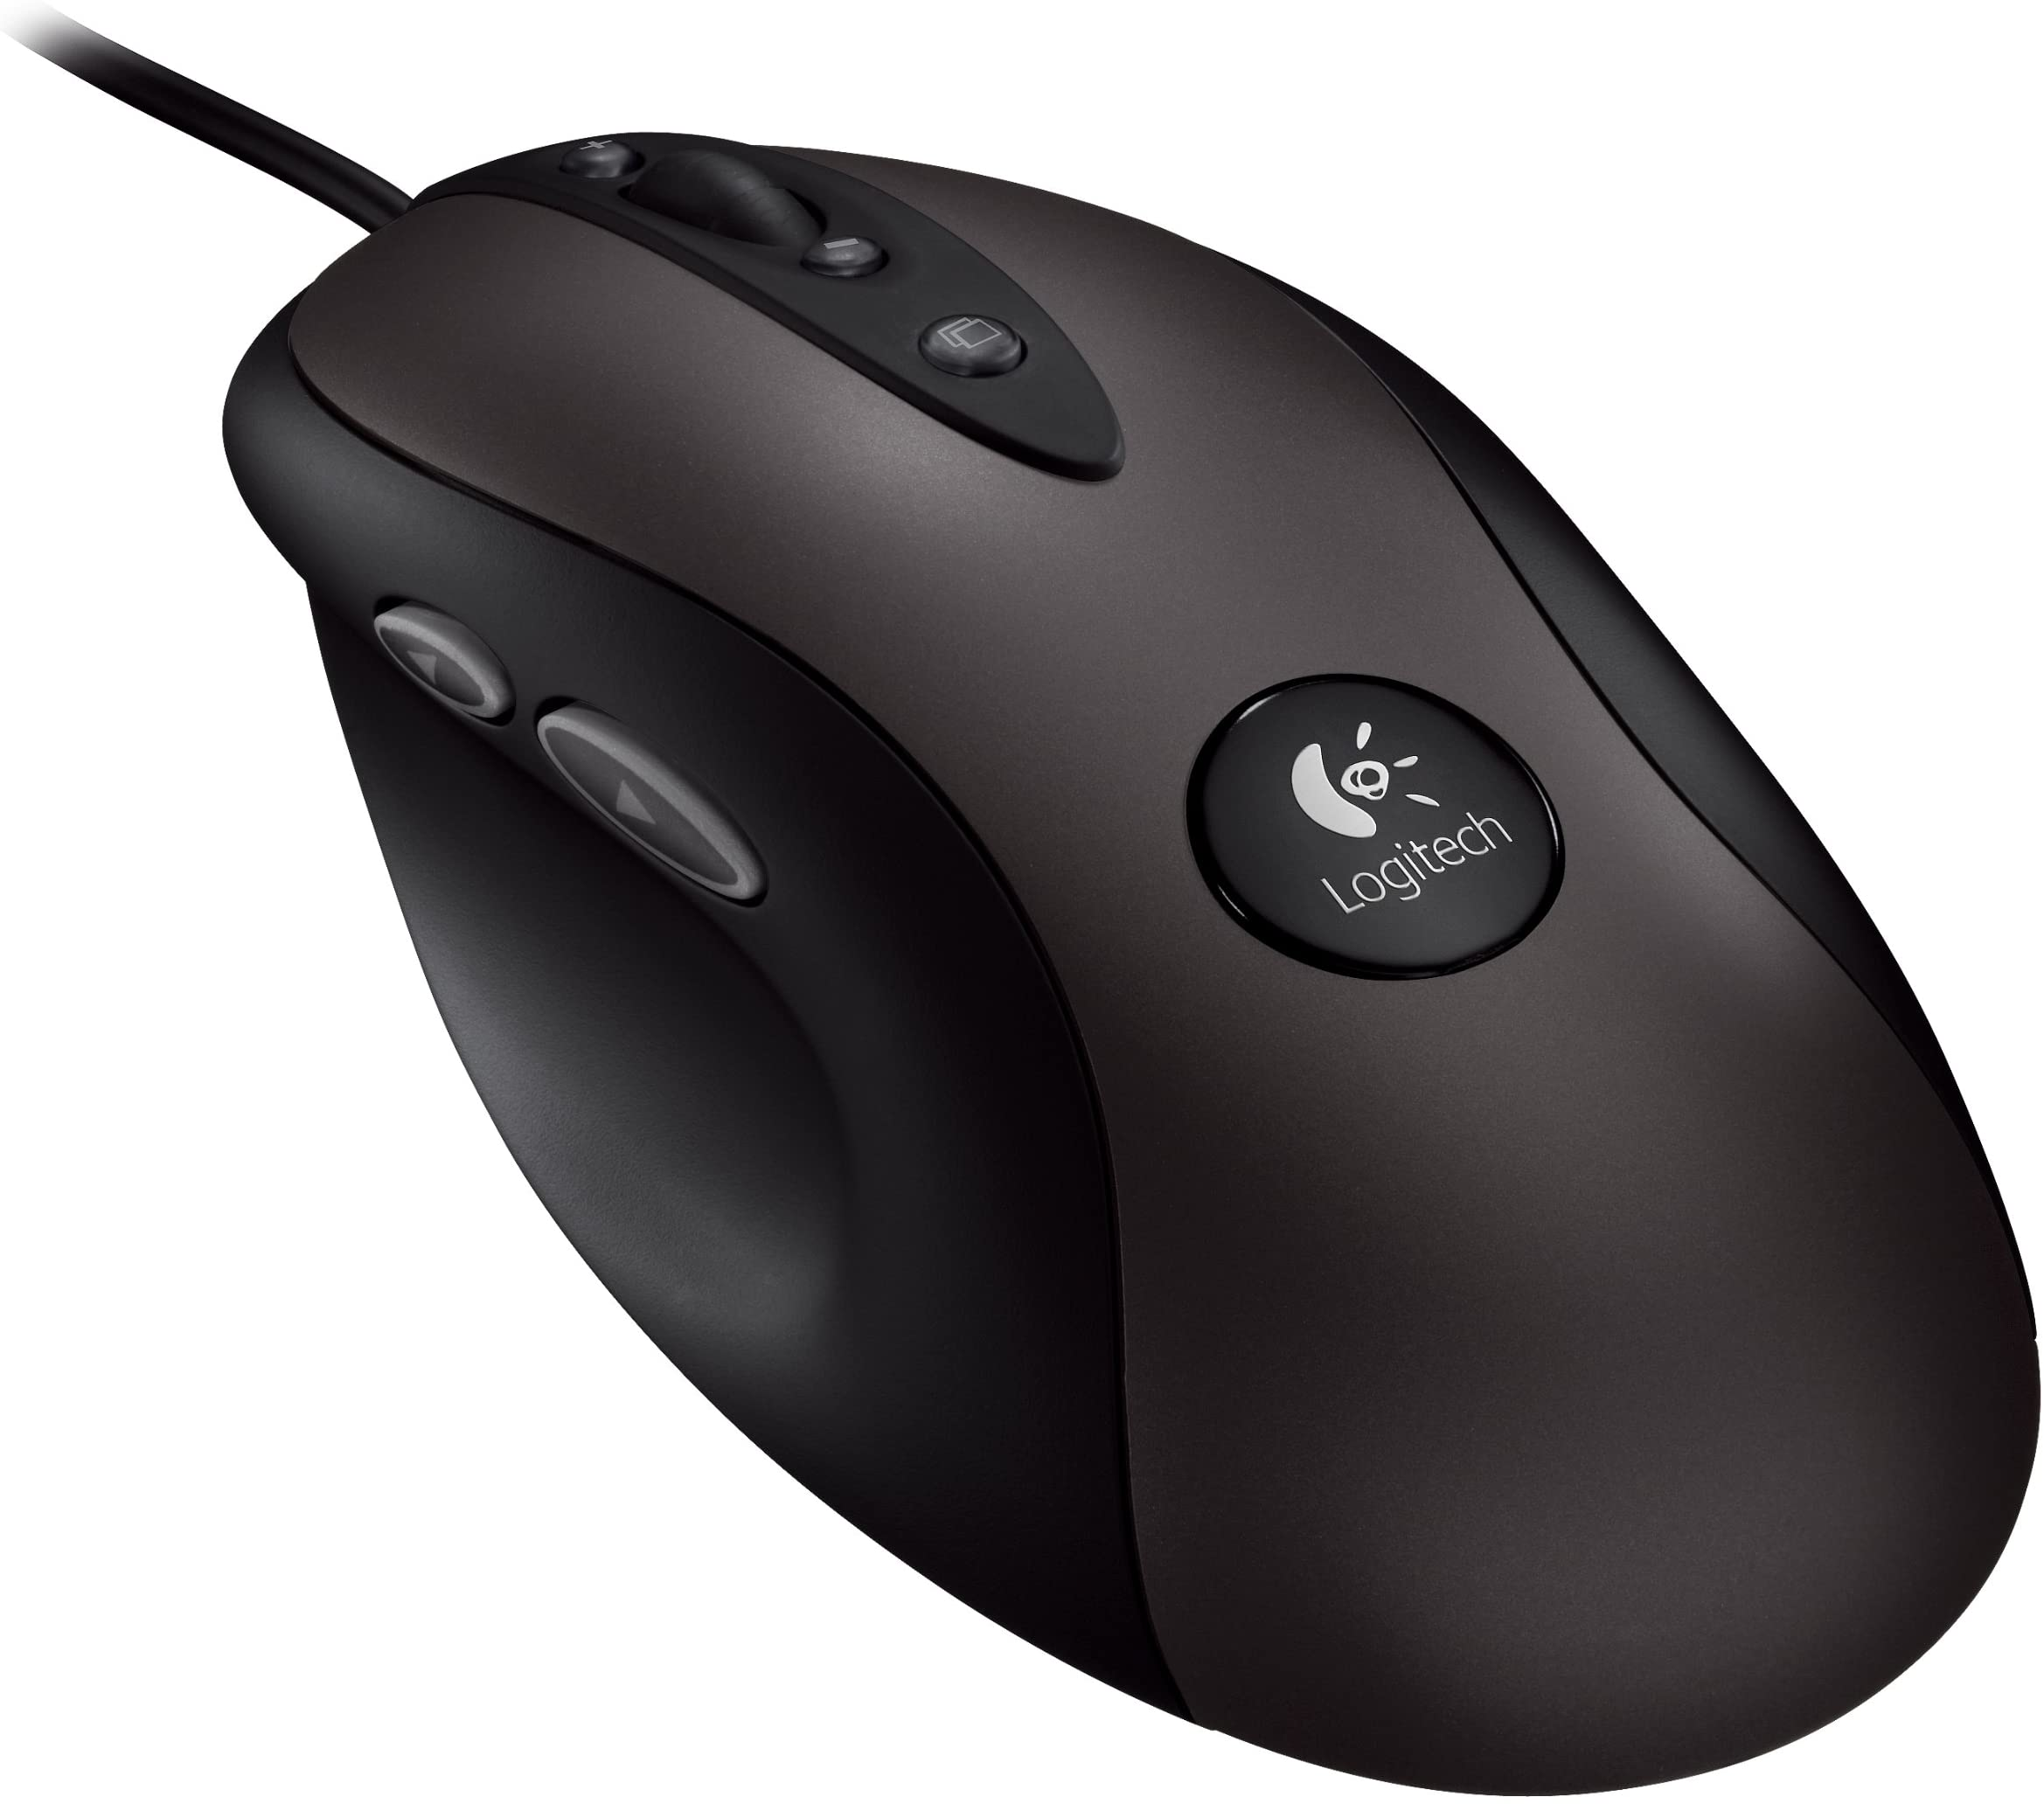 Logitech Optical Gaming Mouse G400 with High-Precision 3600 DPI Optical Engine